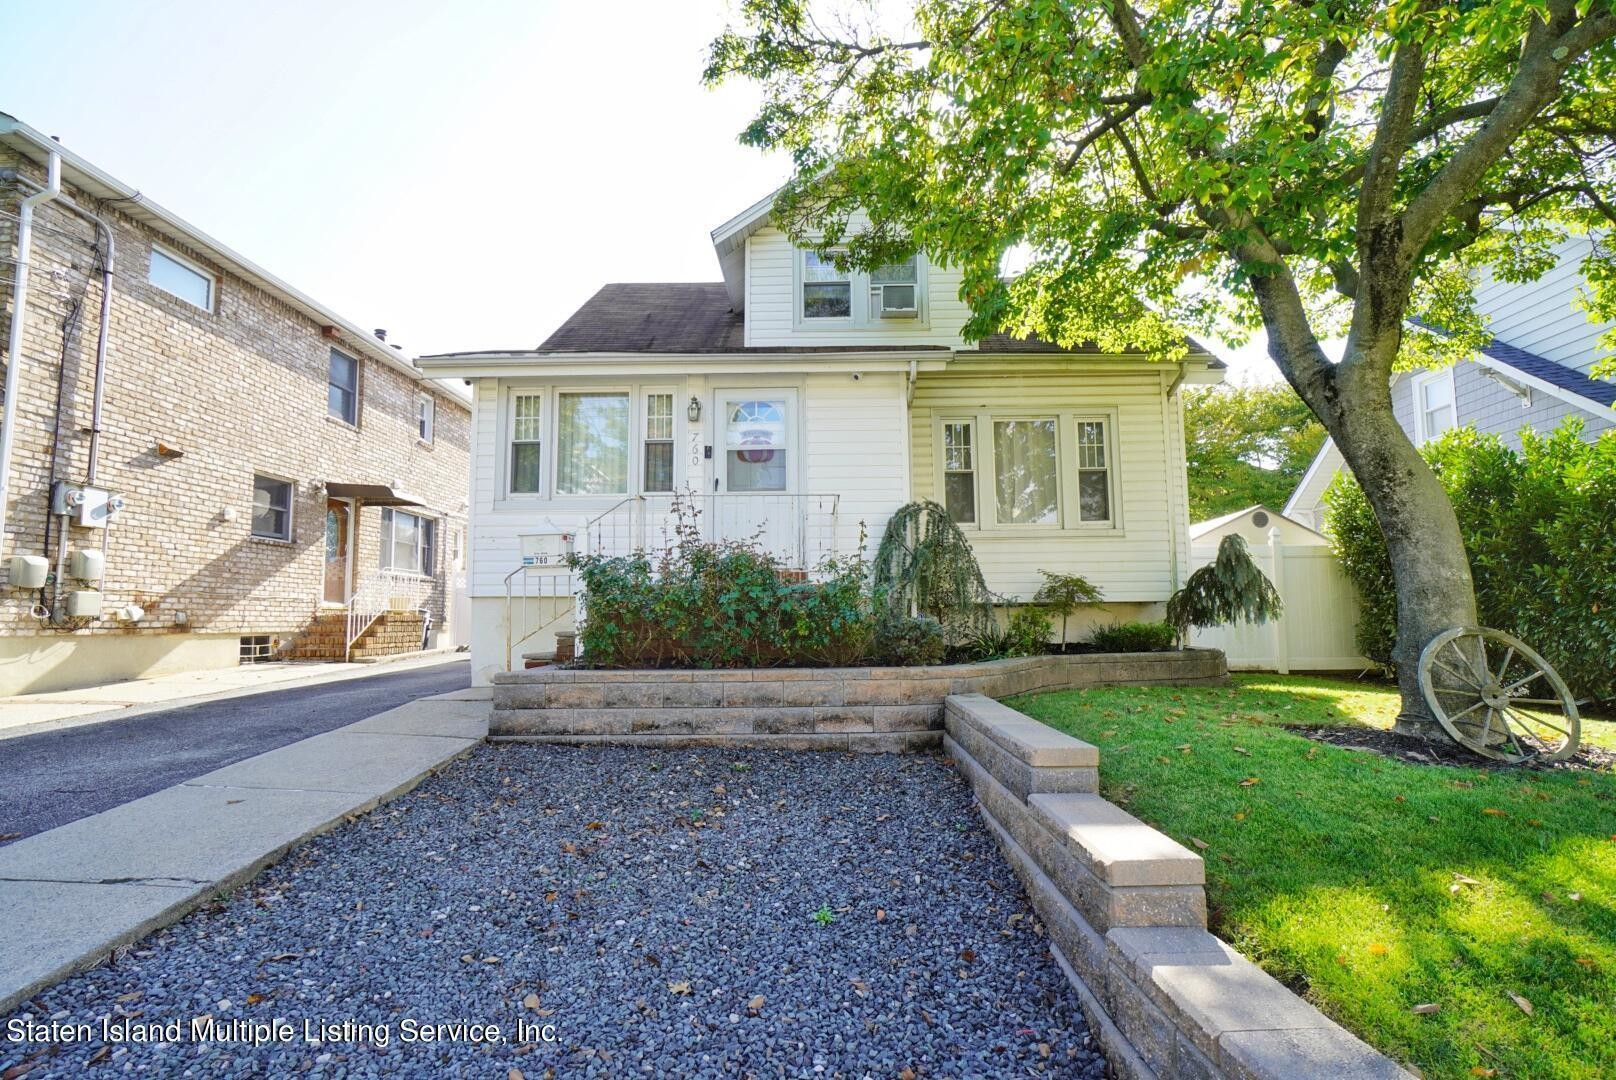 2-Story House In Annadale